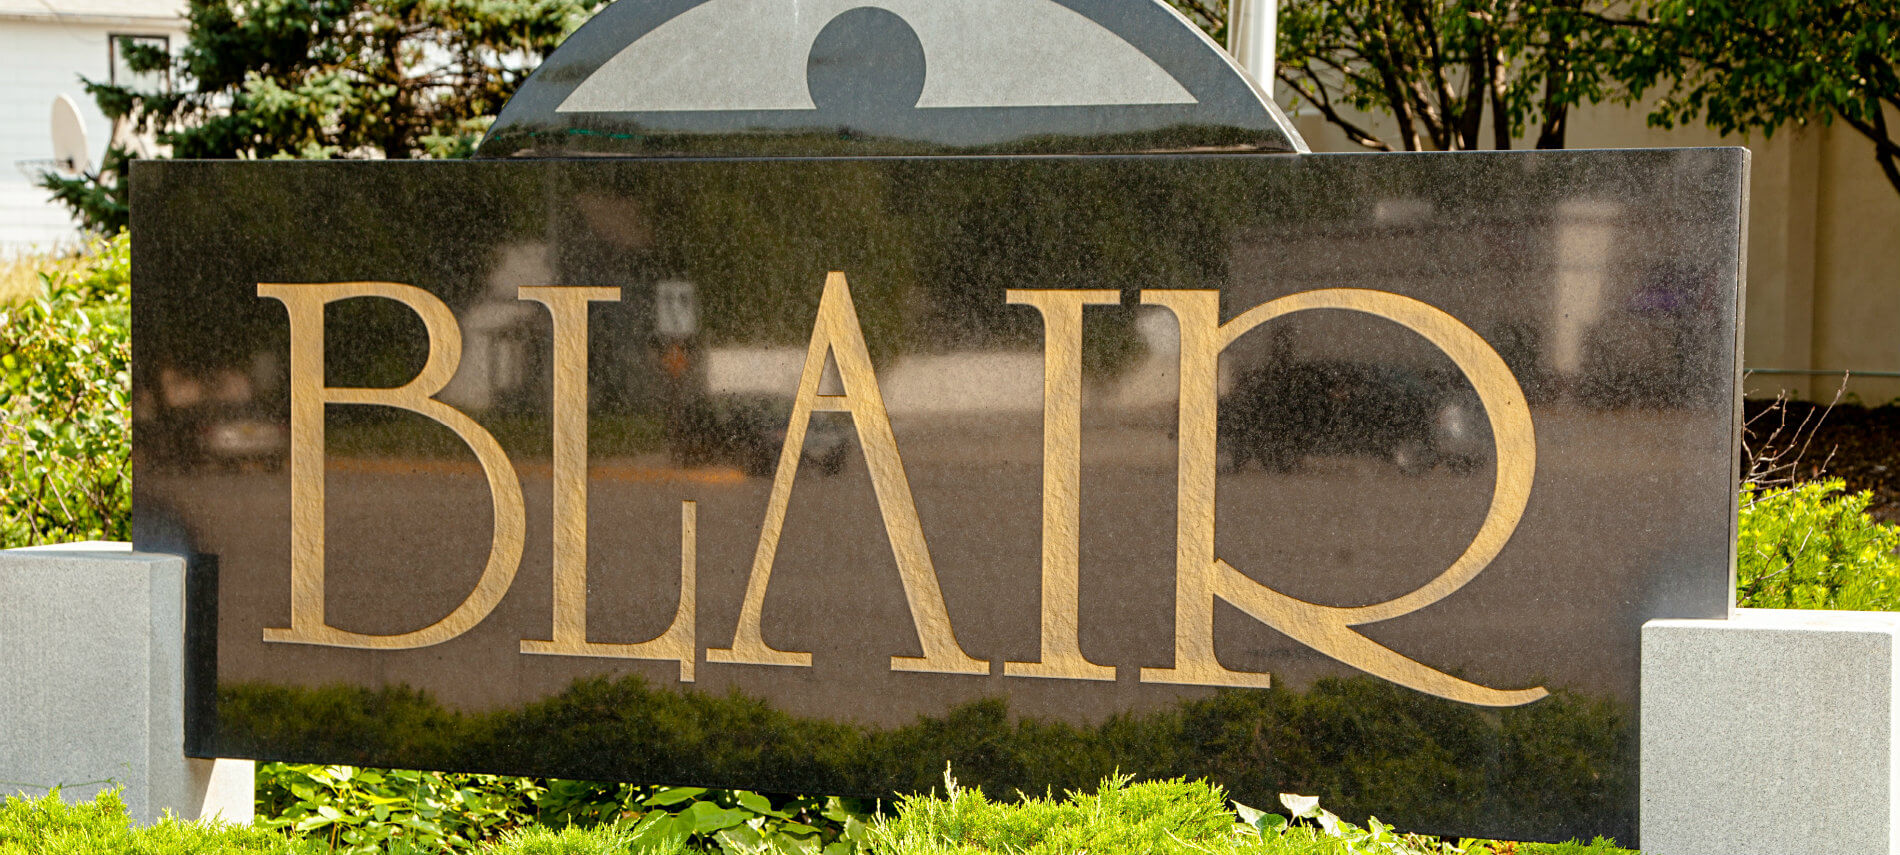 Close-up exterior view of a large, shiny black, stone sign with BLAIR engraved in gold lettering